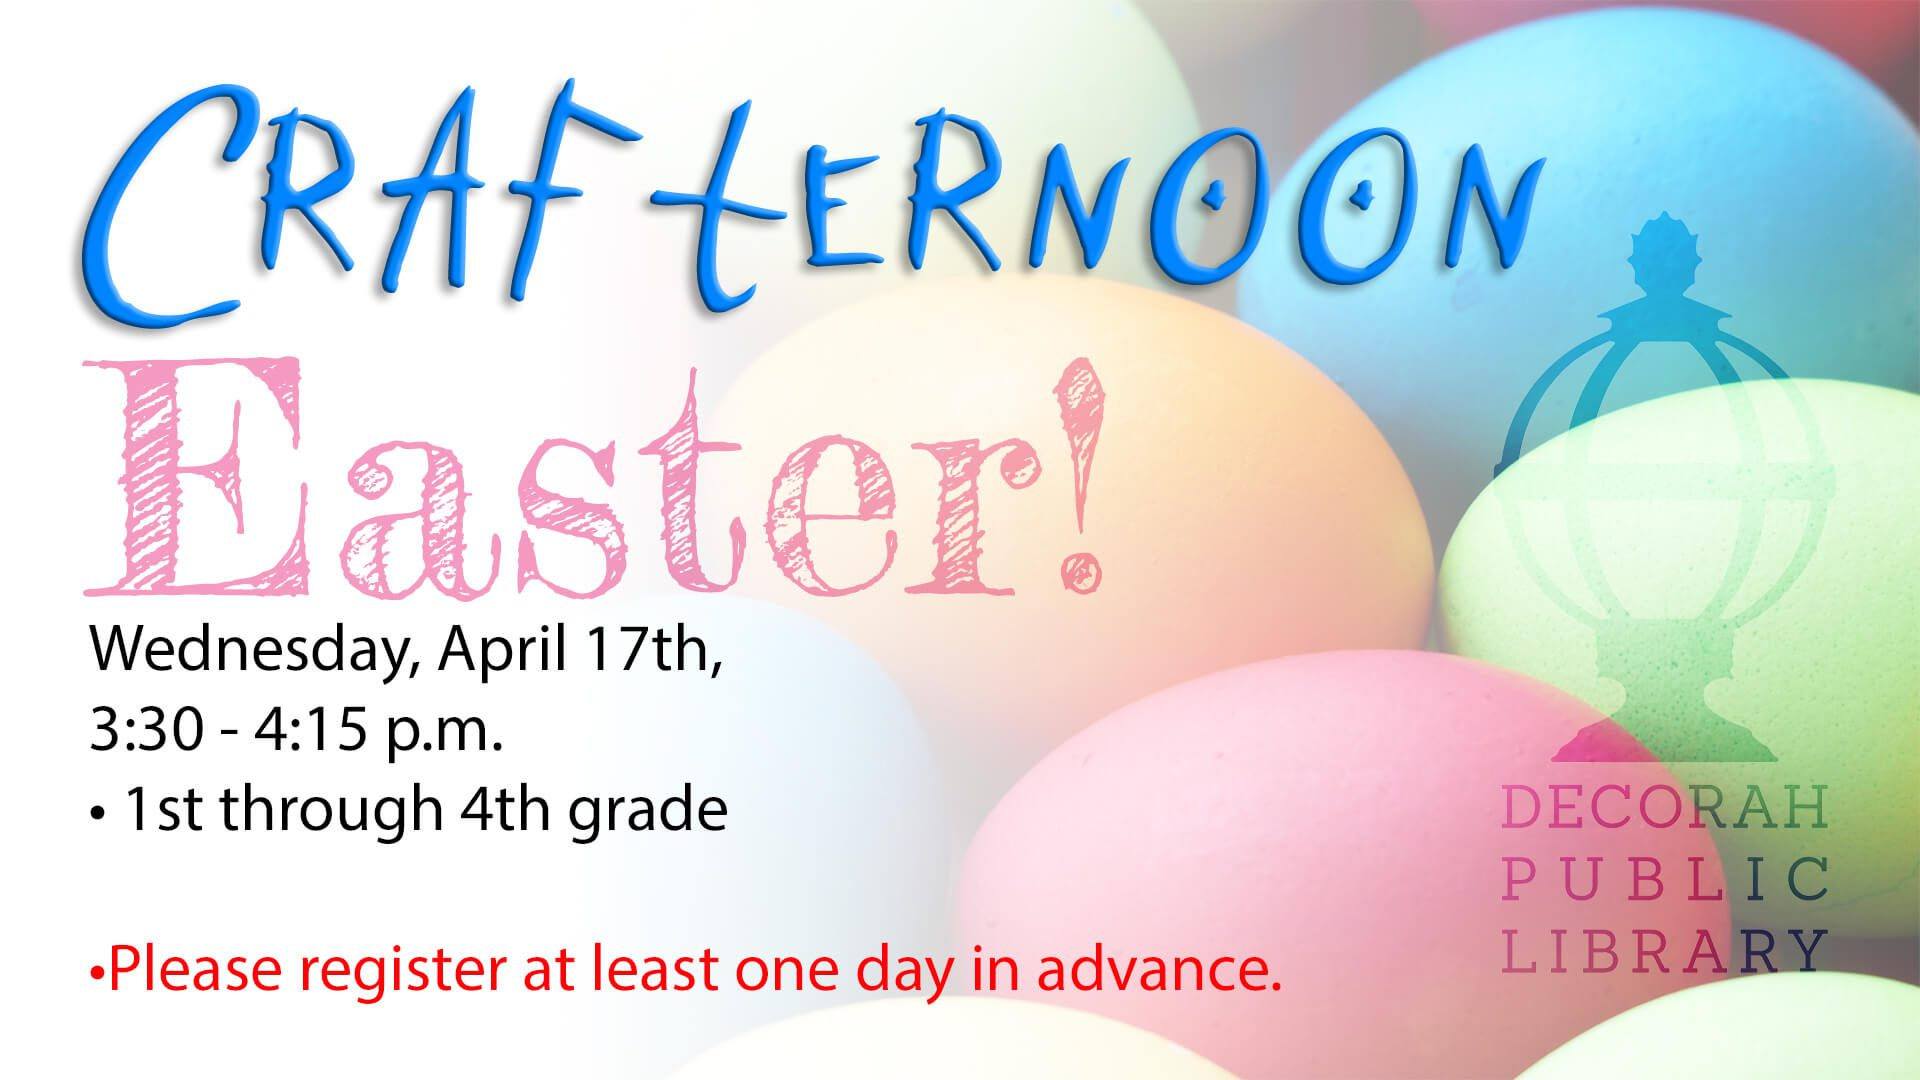 Crafternoon Easter April 17